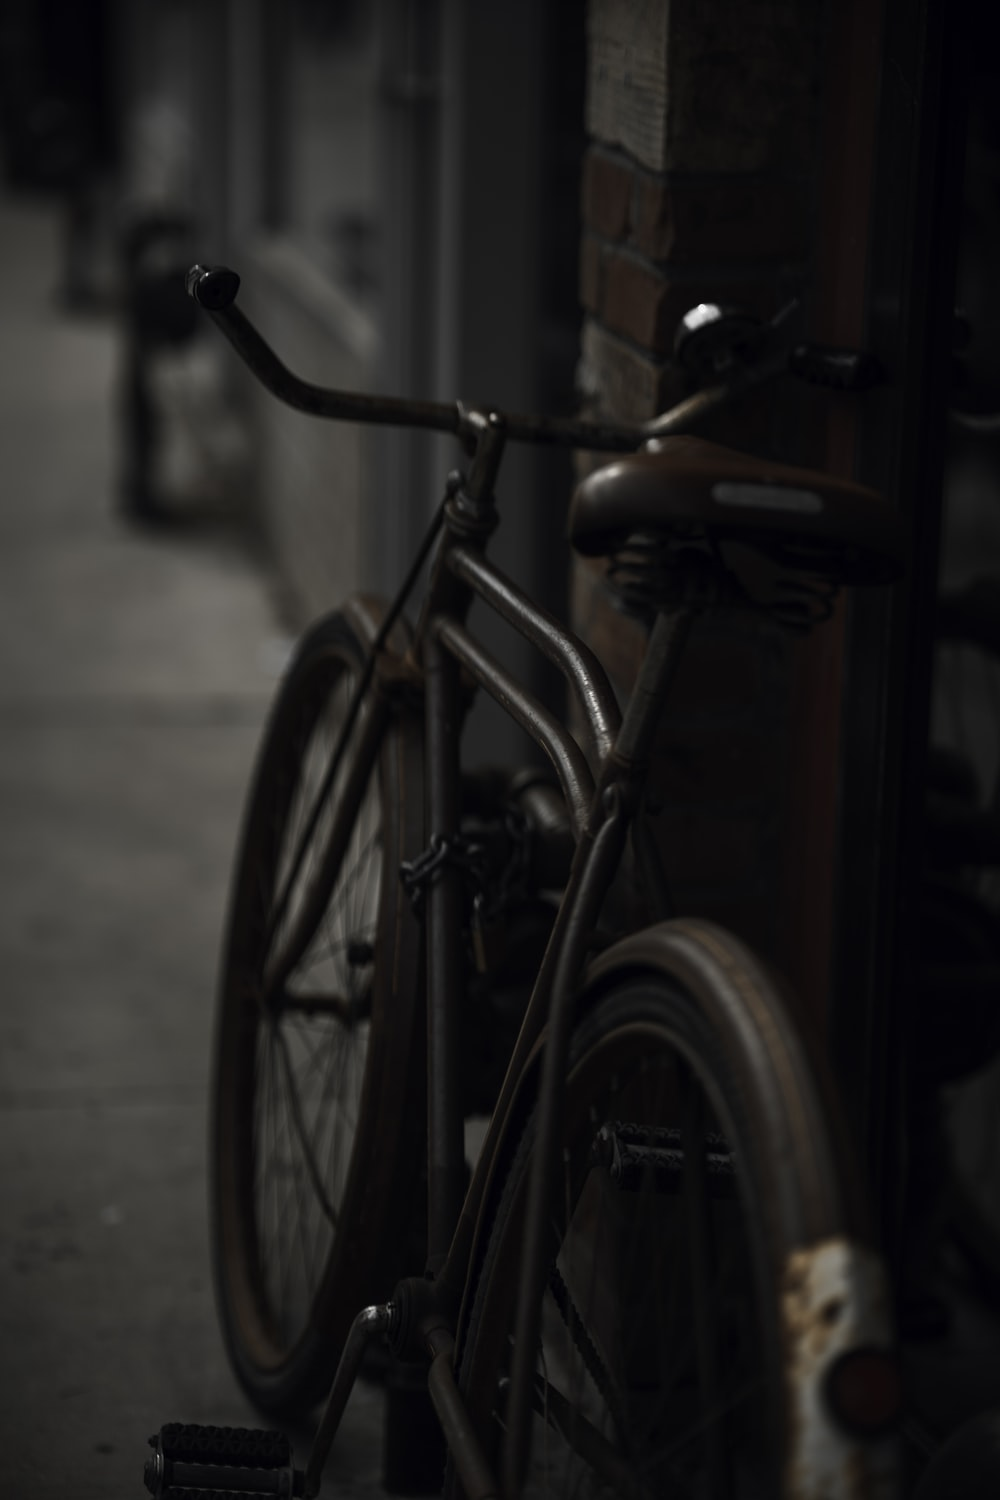 black city bike parked beside brown wooden wall